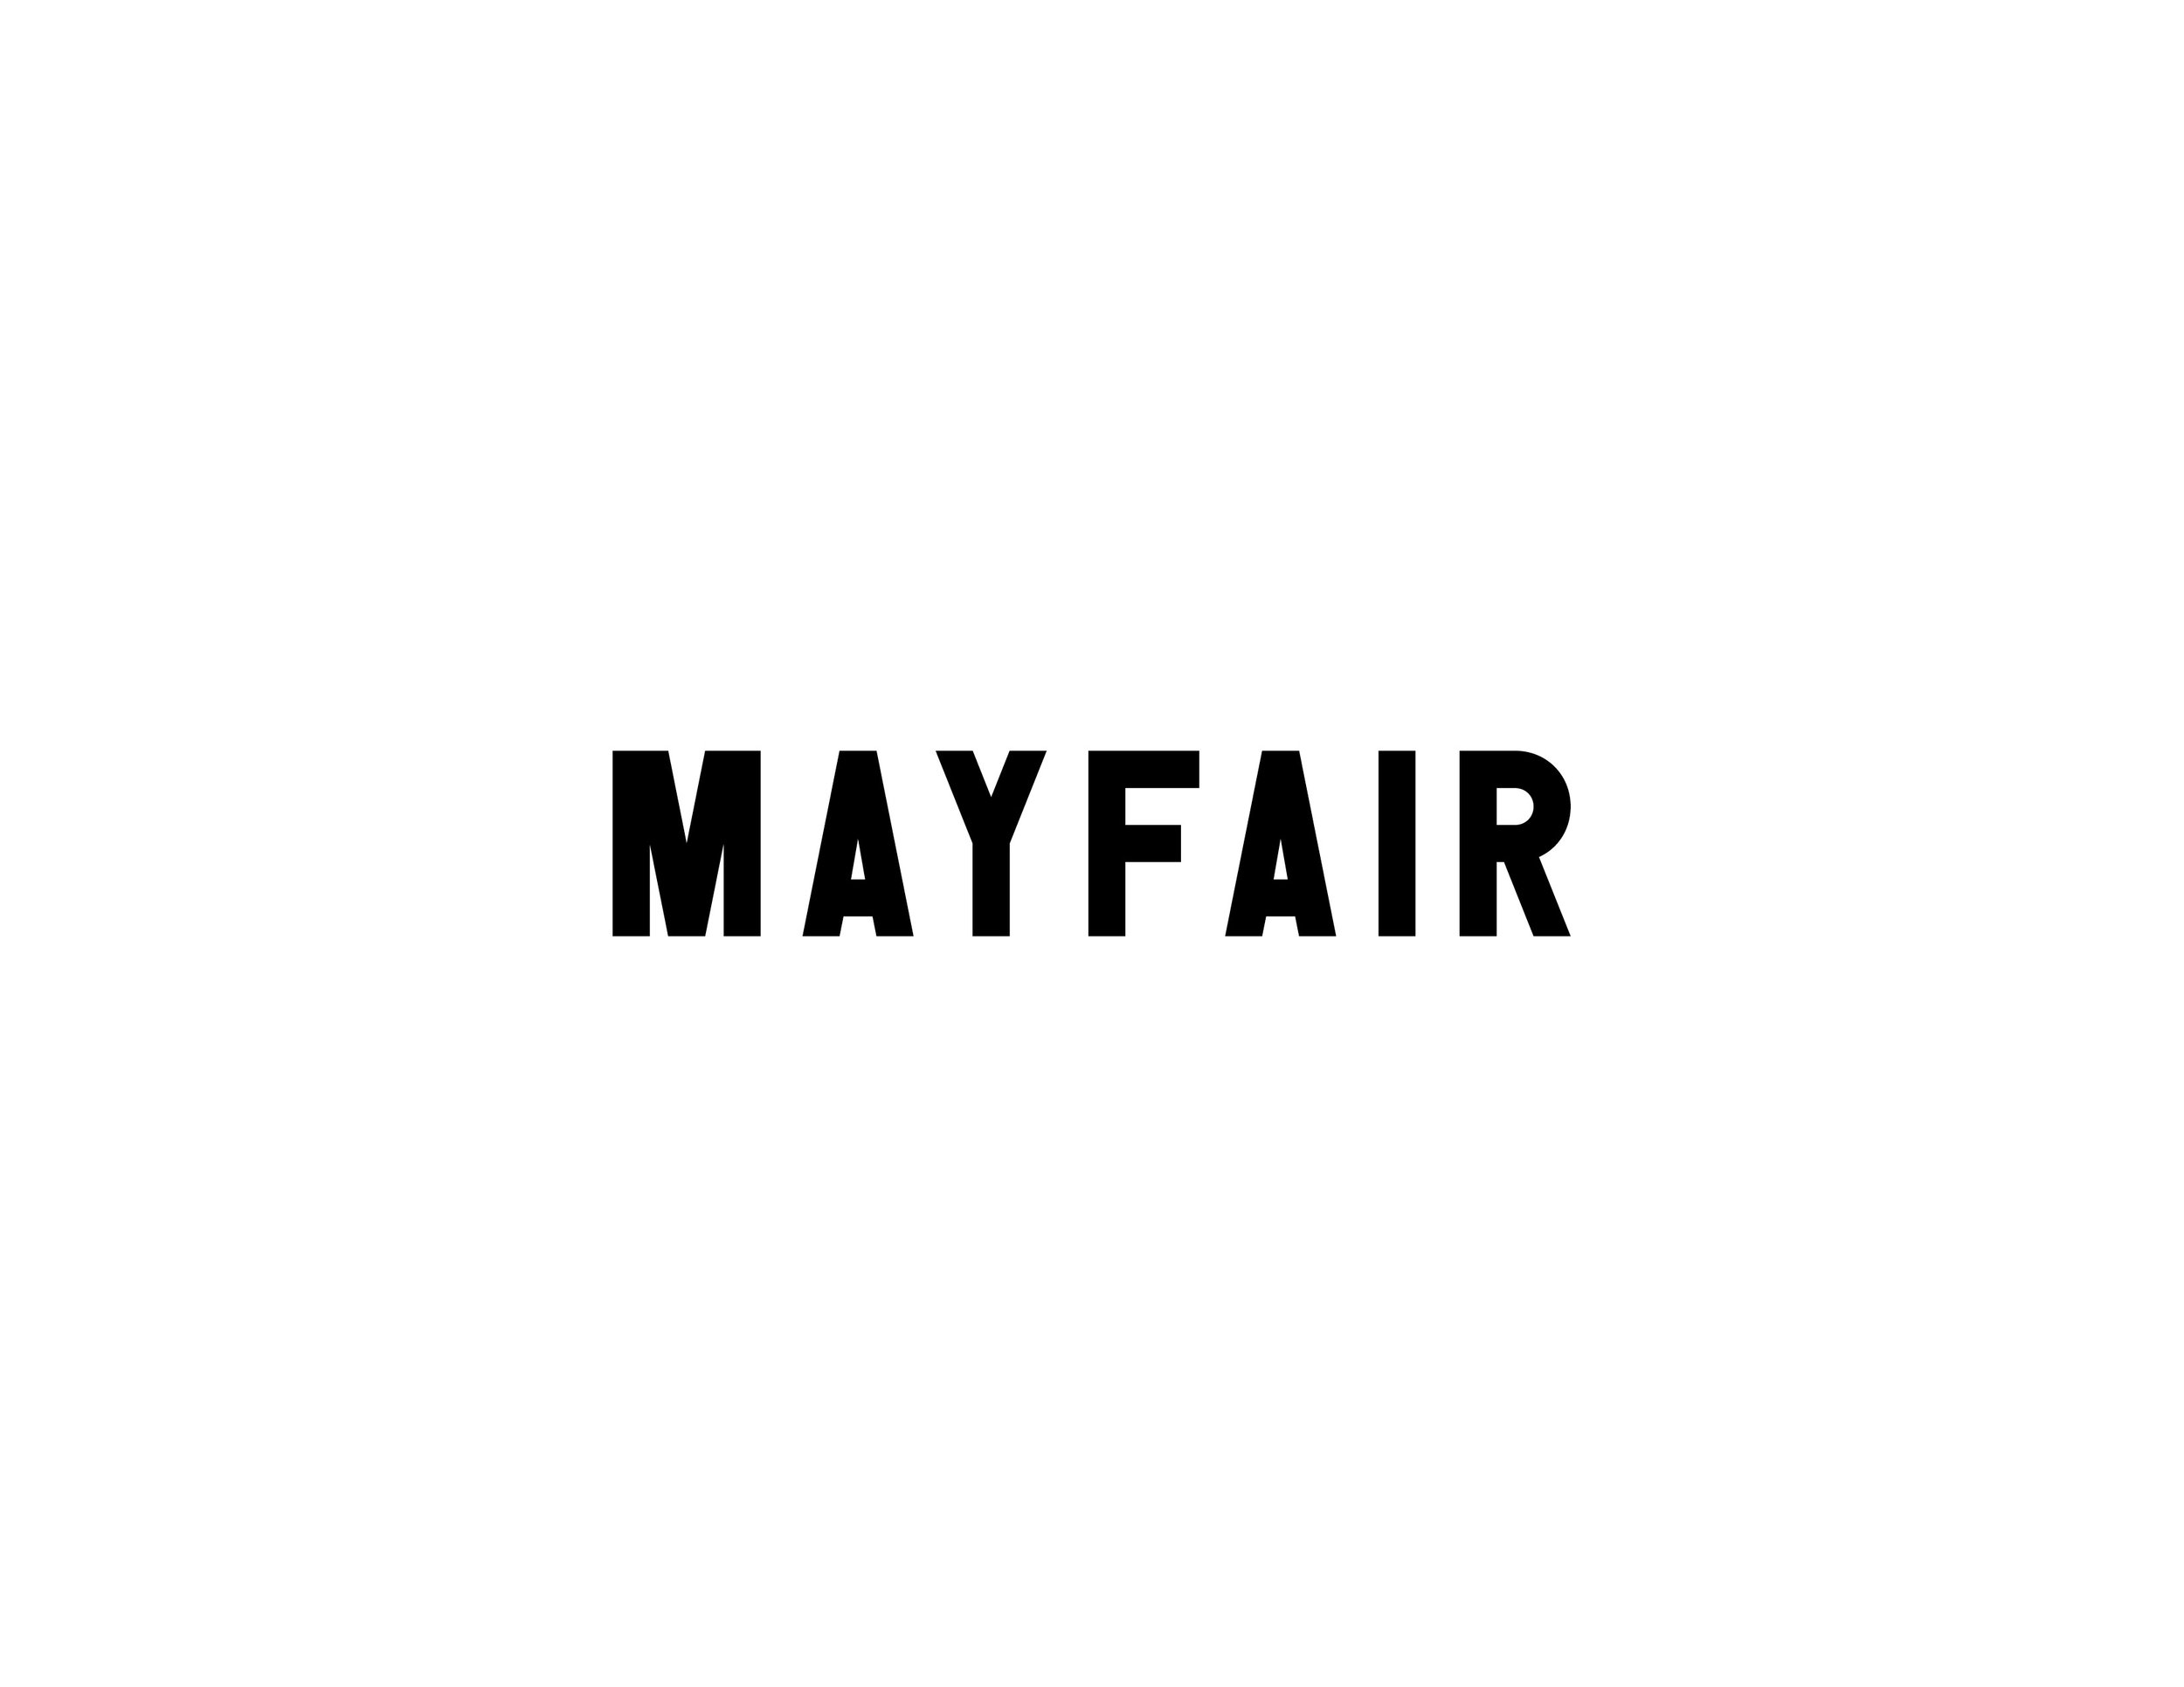 mayfair-signature.jpg